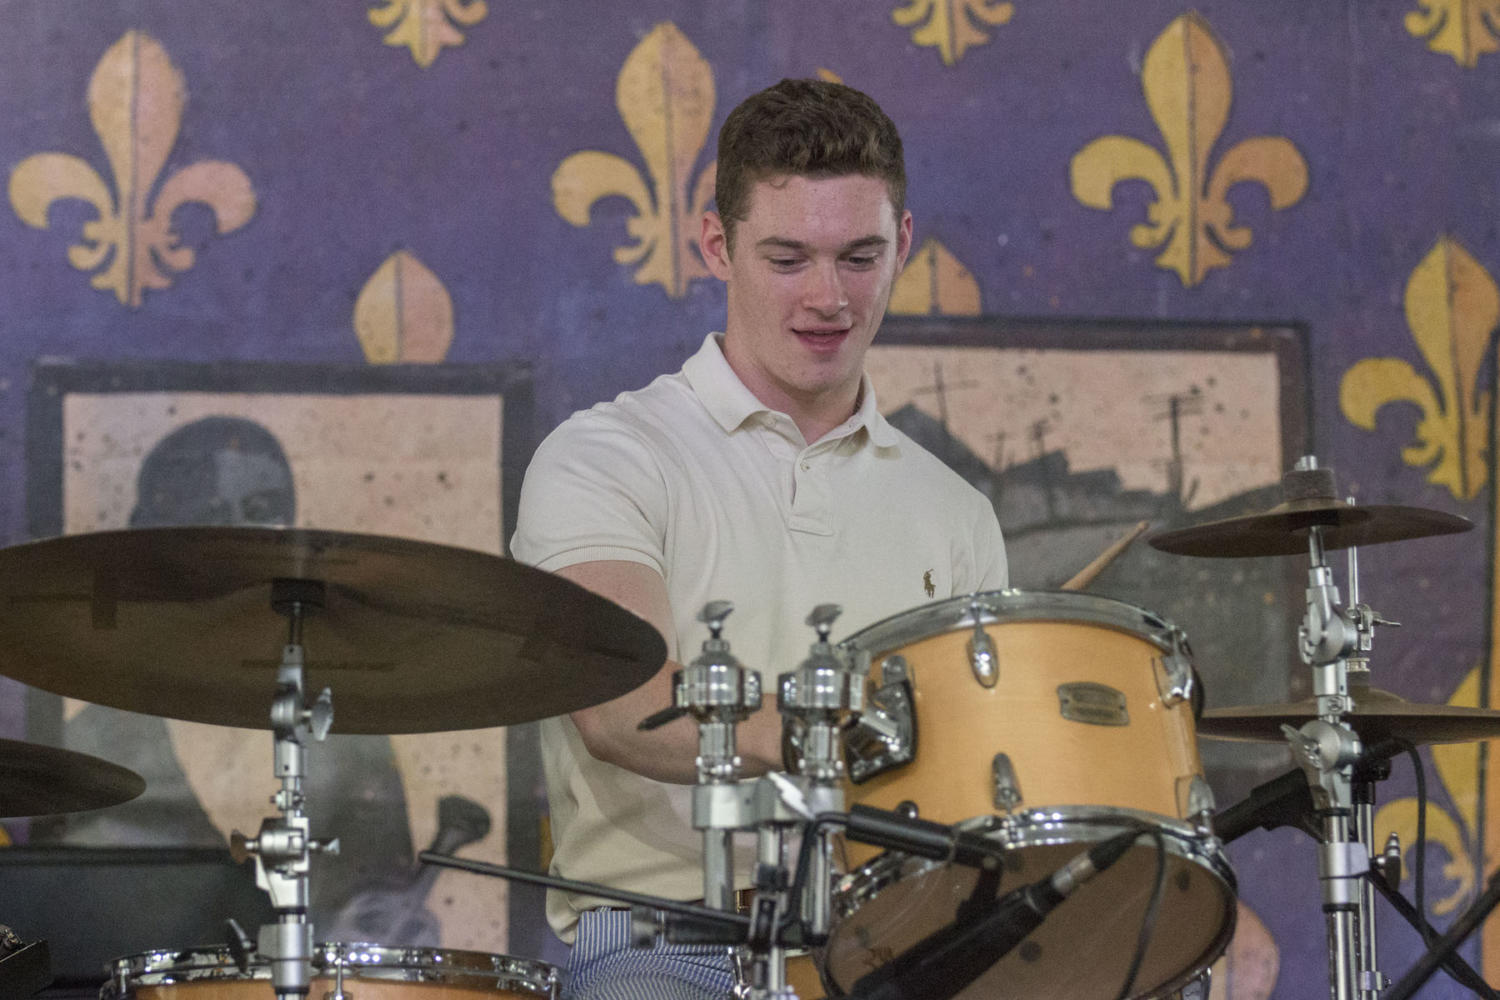 Loyola students bring musical talents to Jazz Fest stage